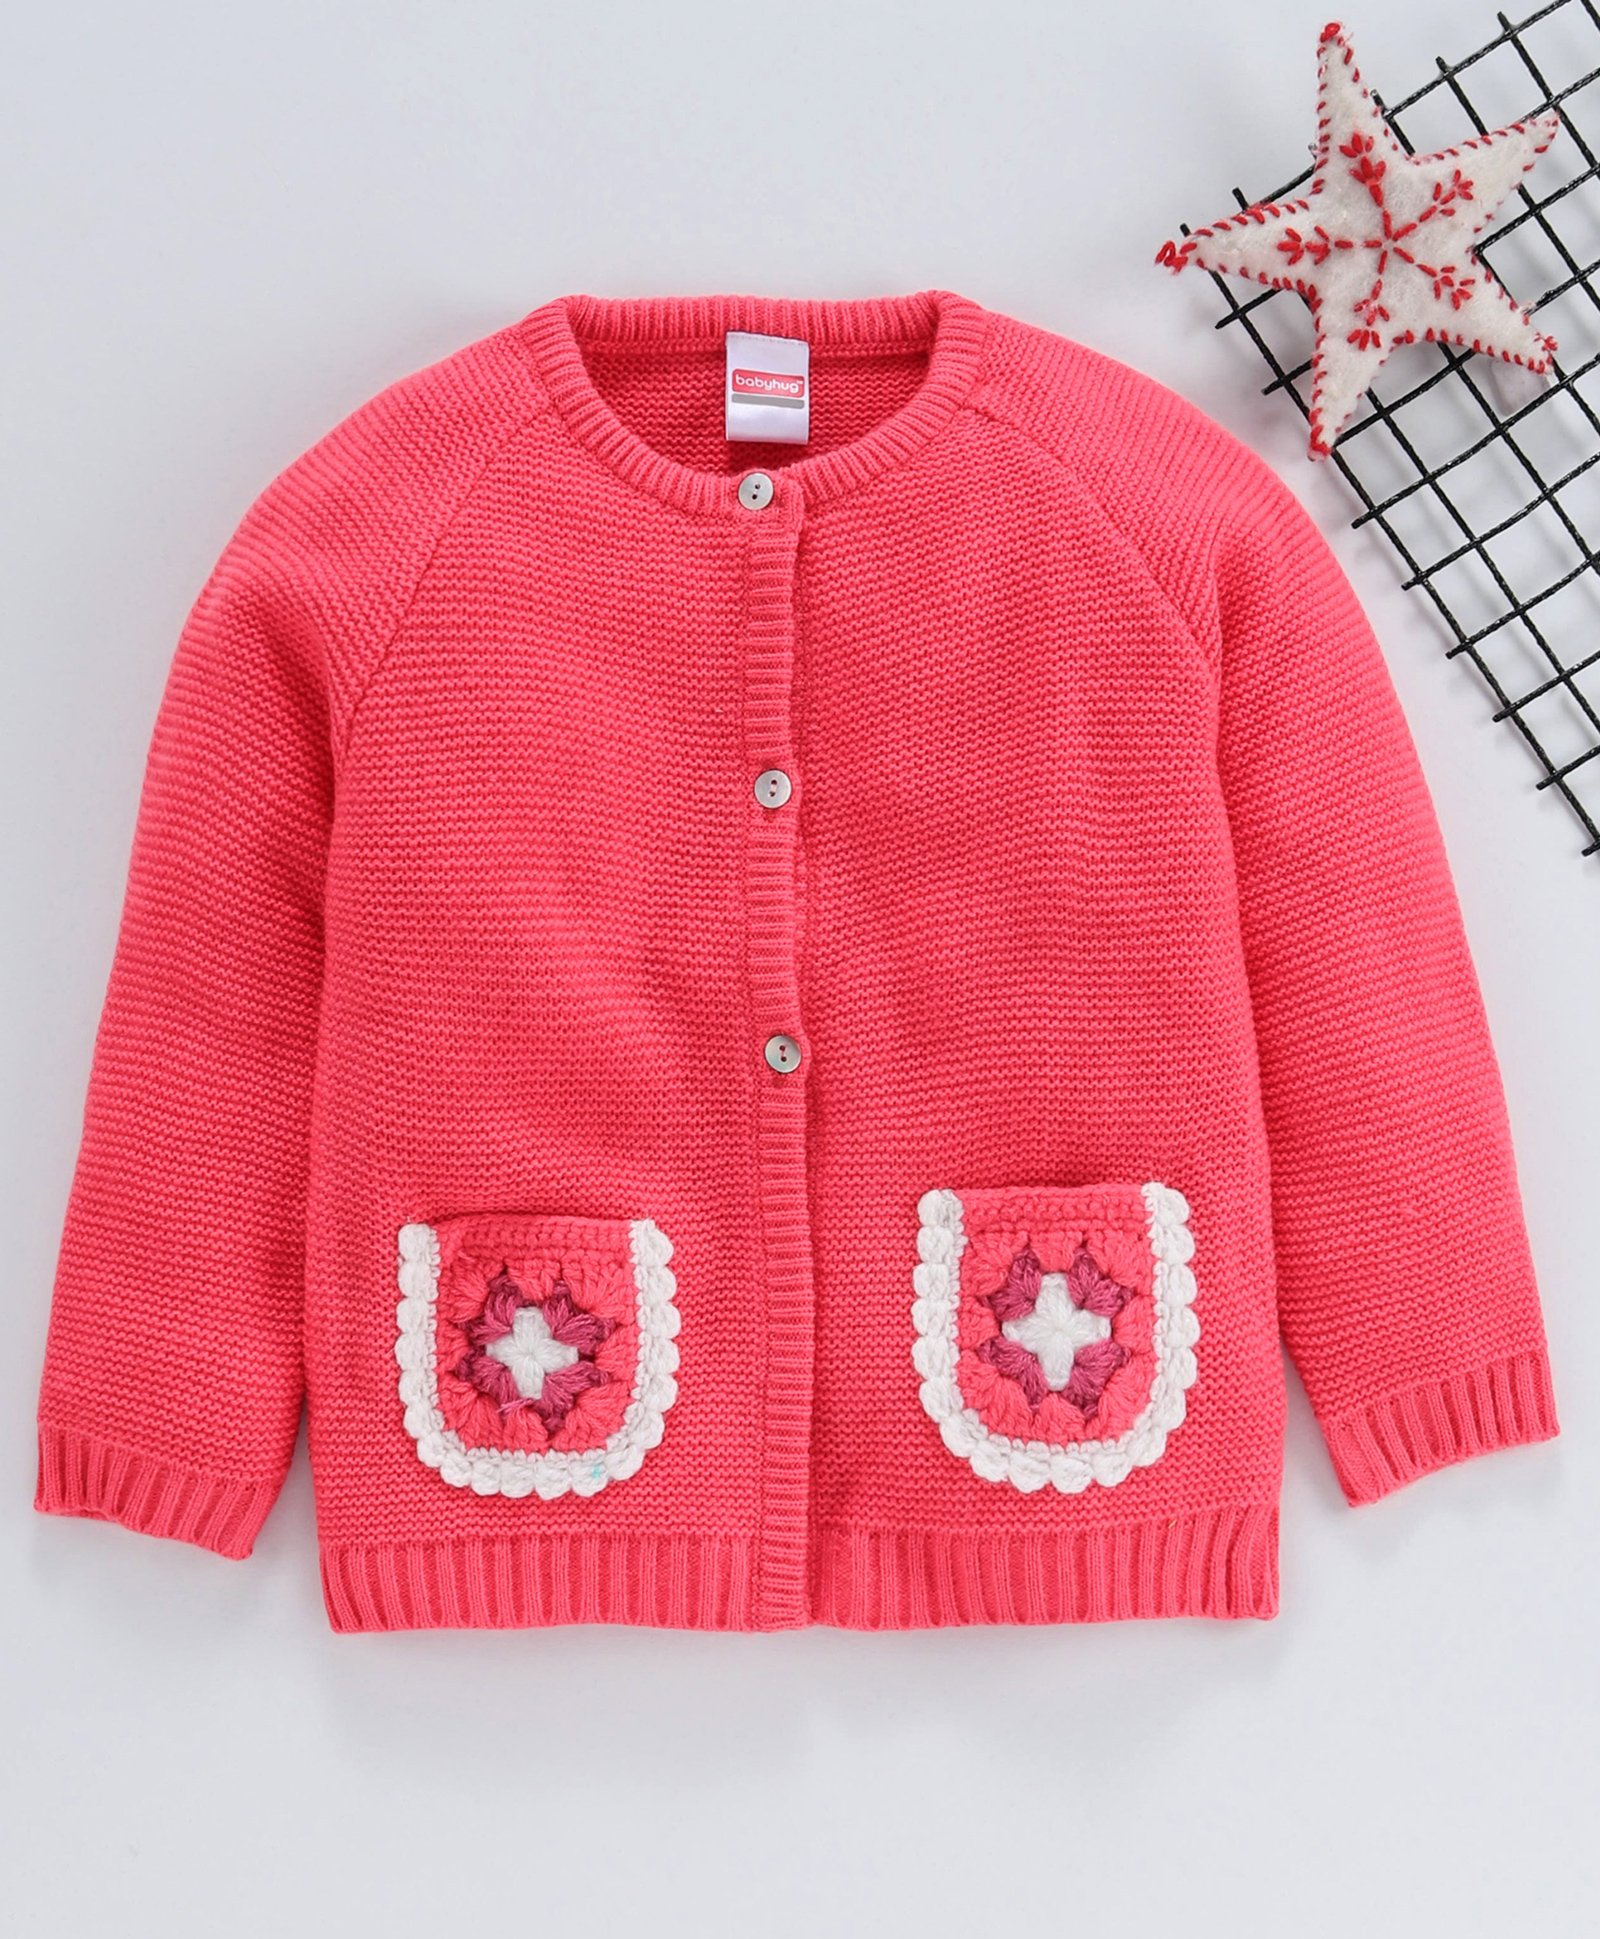 Babyhug Full Sleeves Front Open Sweater With Pockets Coral